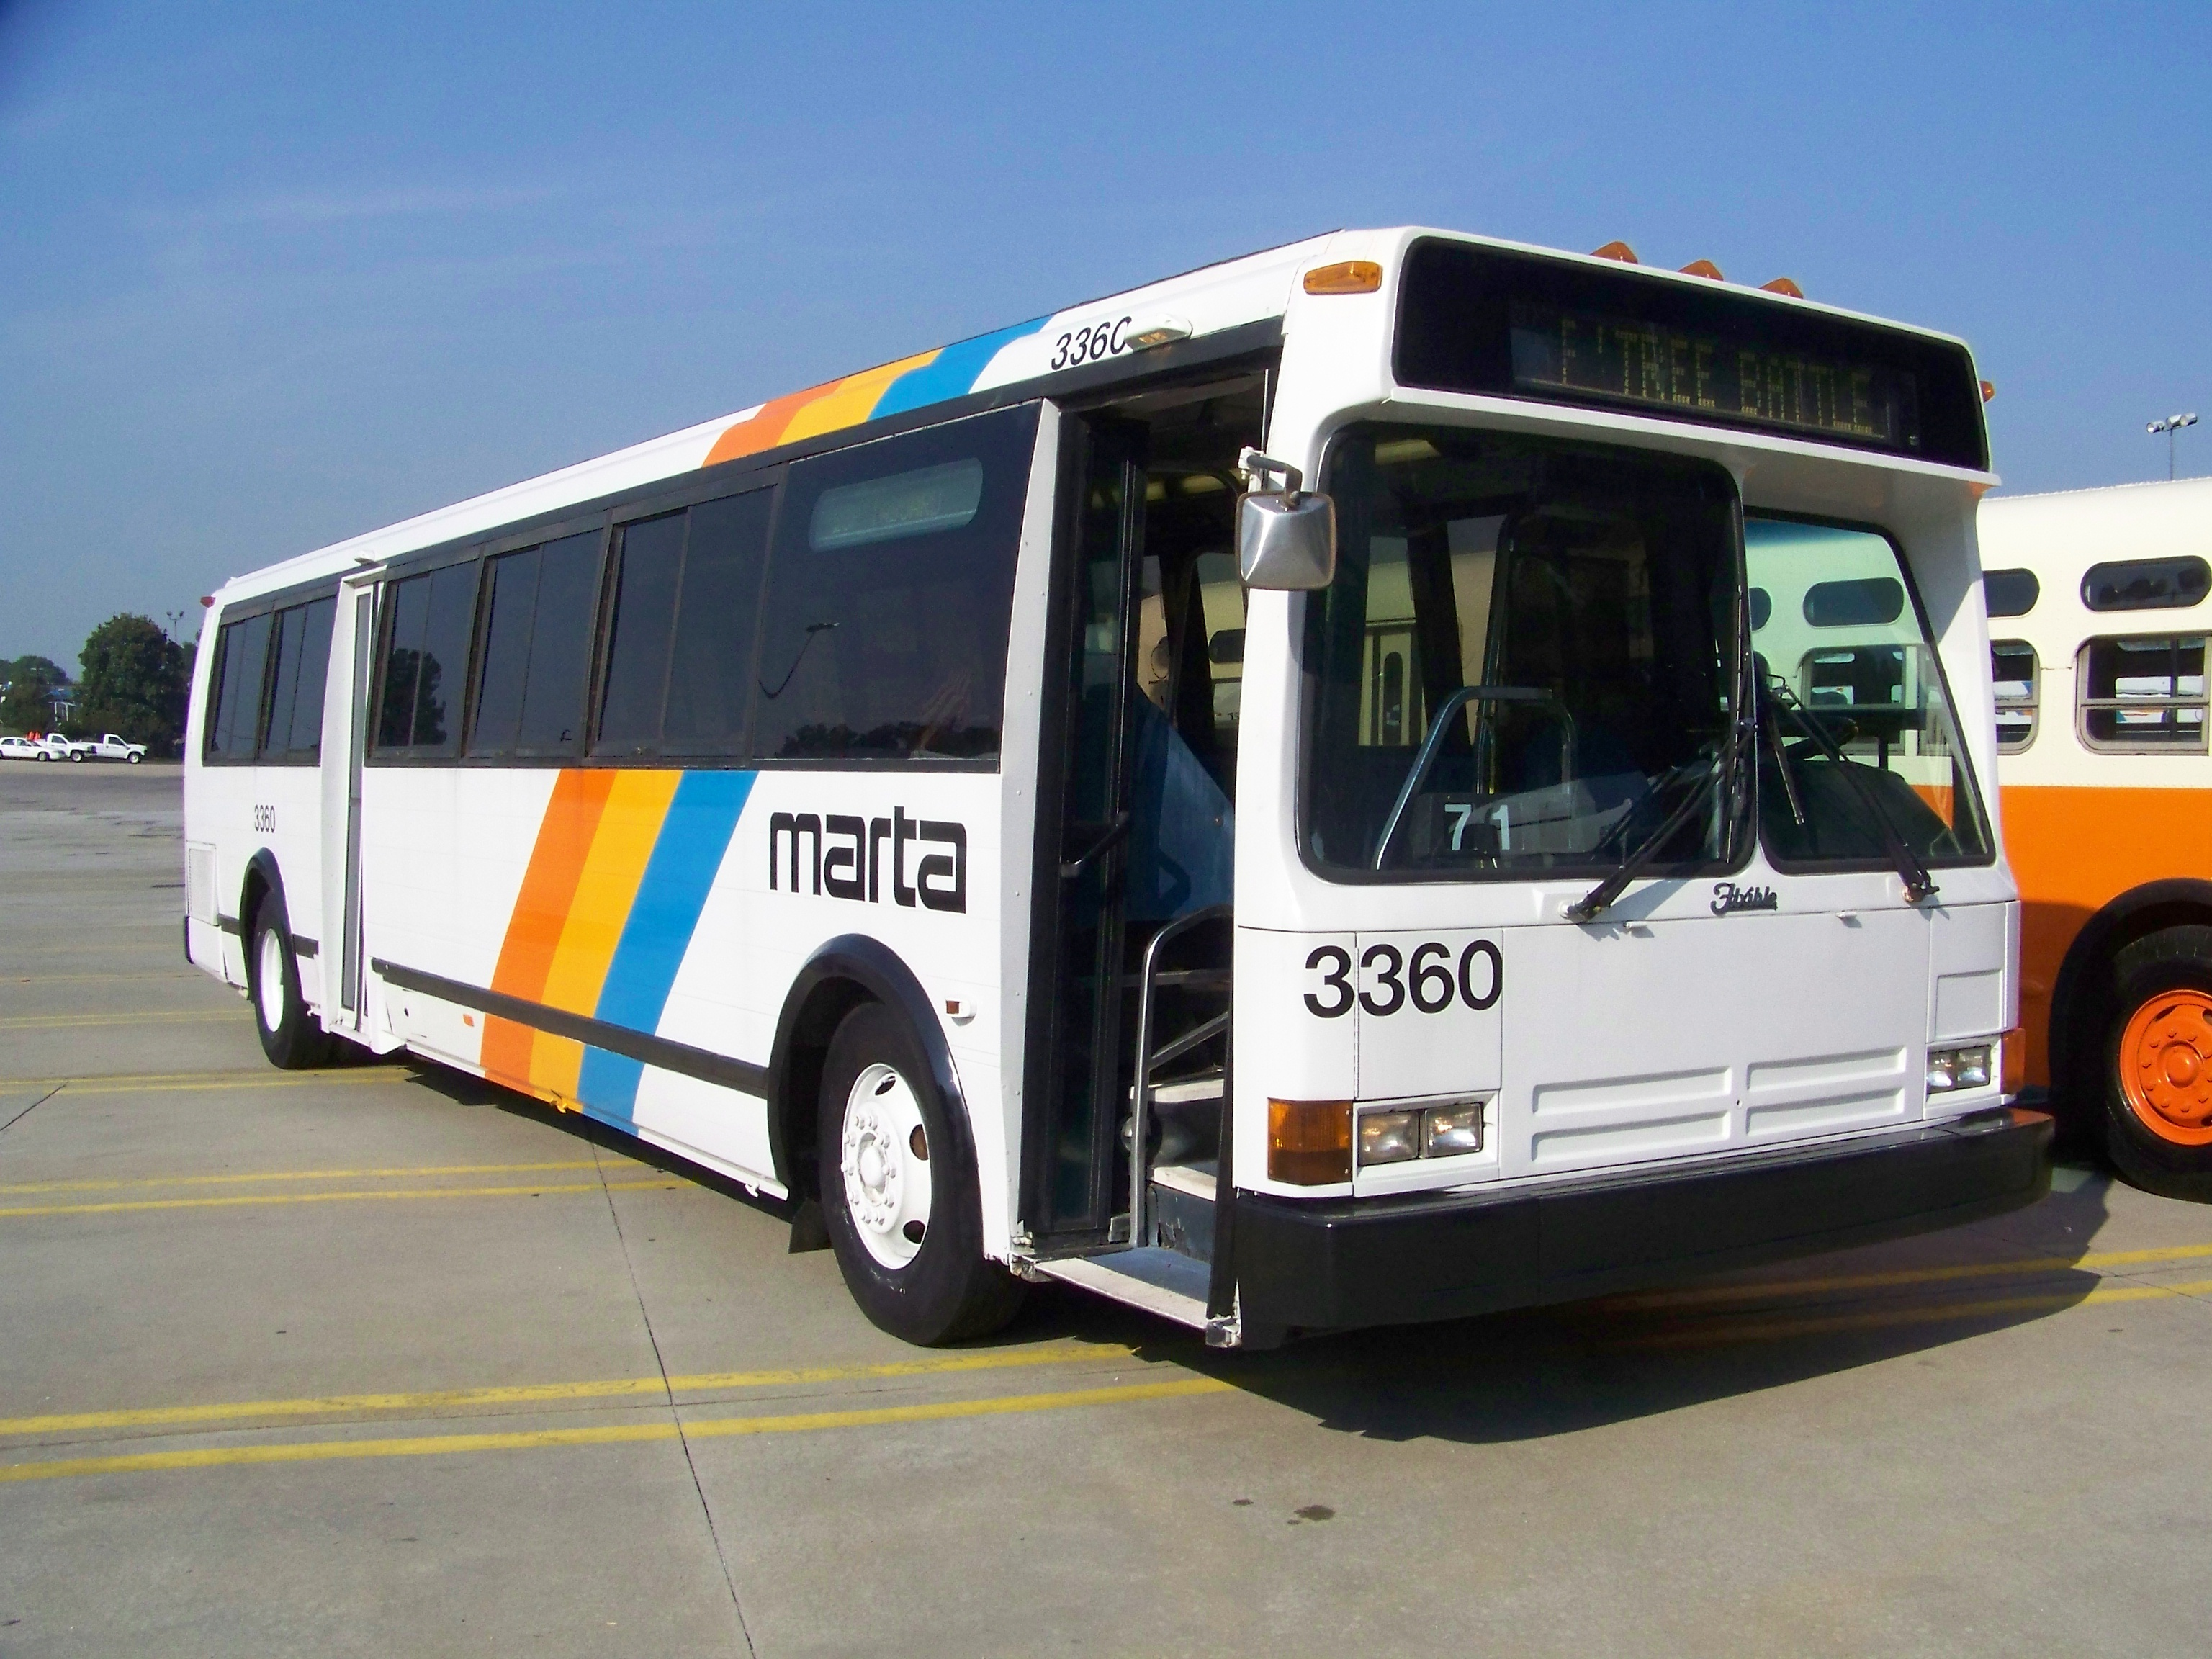 File:MARTA 3360 - preserved 1988 Flxible Metro bus (2014